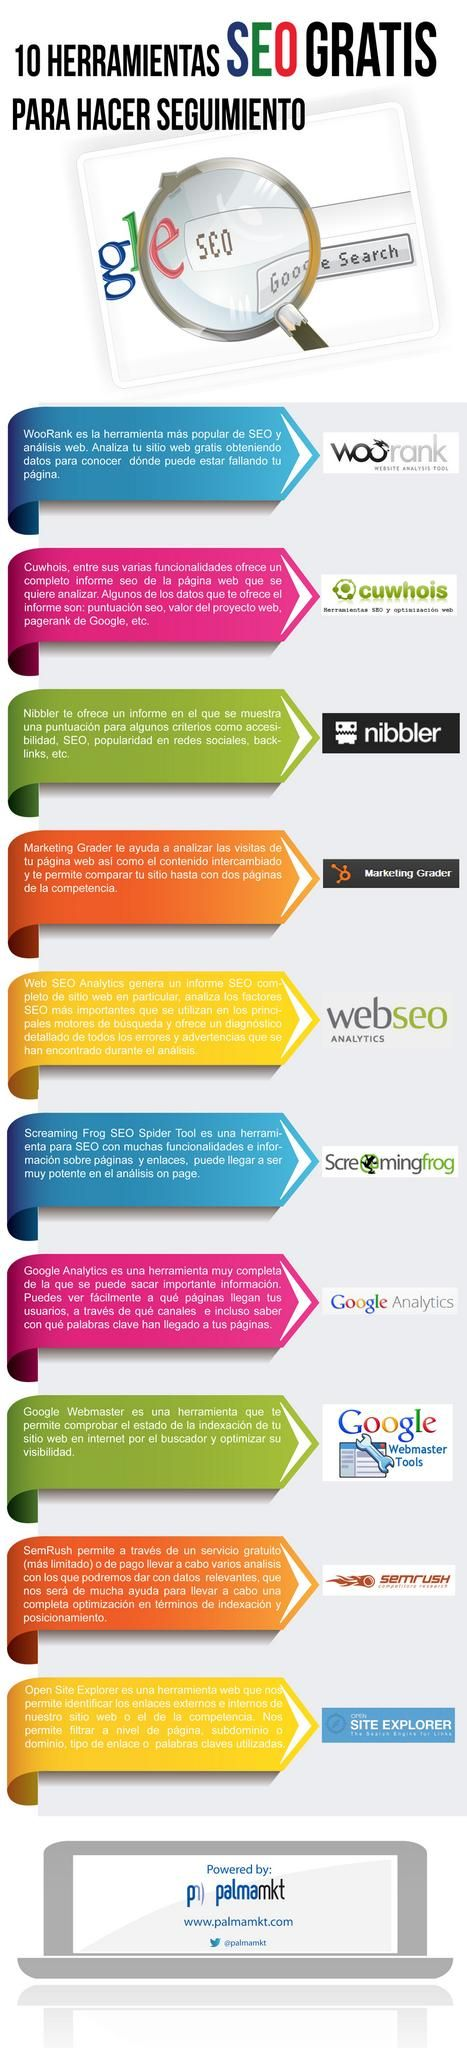 Ever wonder why your website isn't getting the traffic you need to run your business. Ever get frustrated that your competitors are taking all your internet traffic, clients and money, because you aren't at the top of the search engines? Let SEO Houston Pros change the way you do business online! go to http://www.seohoustonpros.com and fill out the discovery form so we can fast track you to getting your business back online, and dominate GOOGLE once and for all. #websit traffic #webtraffic